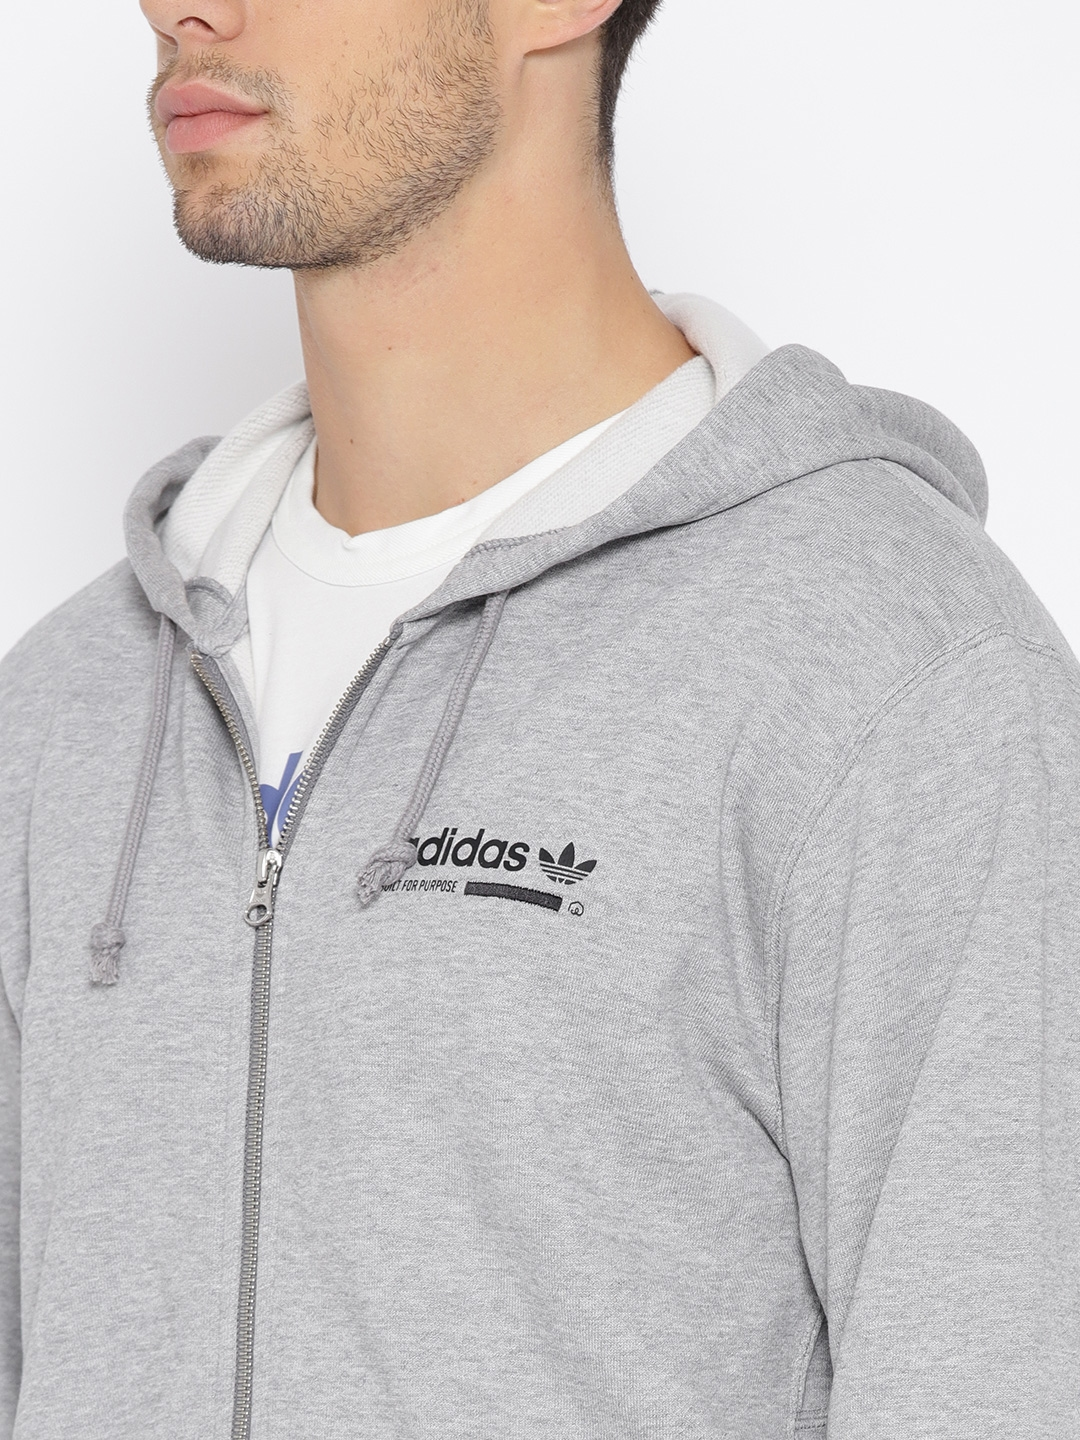 54cae72a78ca Buy ADIDAS Originals Men Grey Melange Kaval FZ Hooded Sweatshirt ...